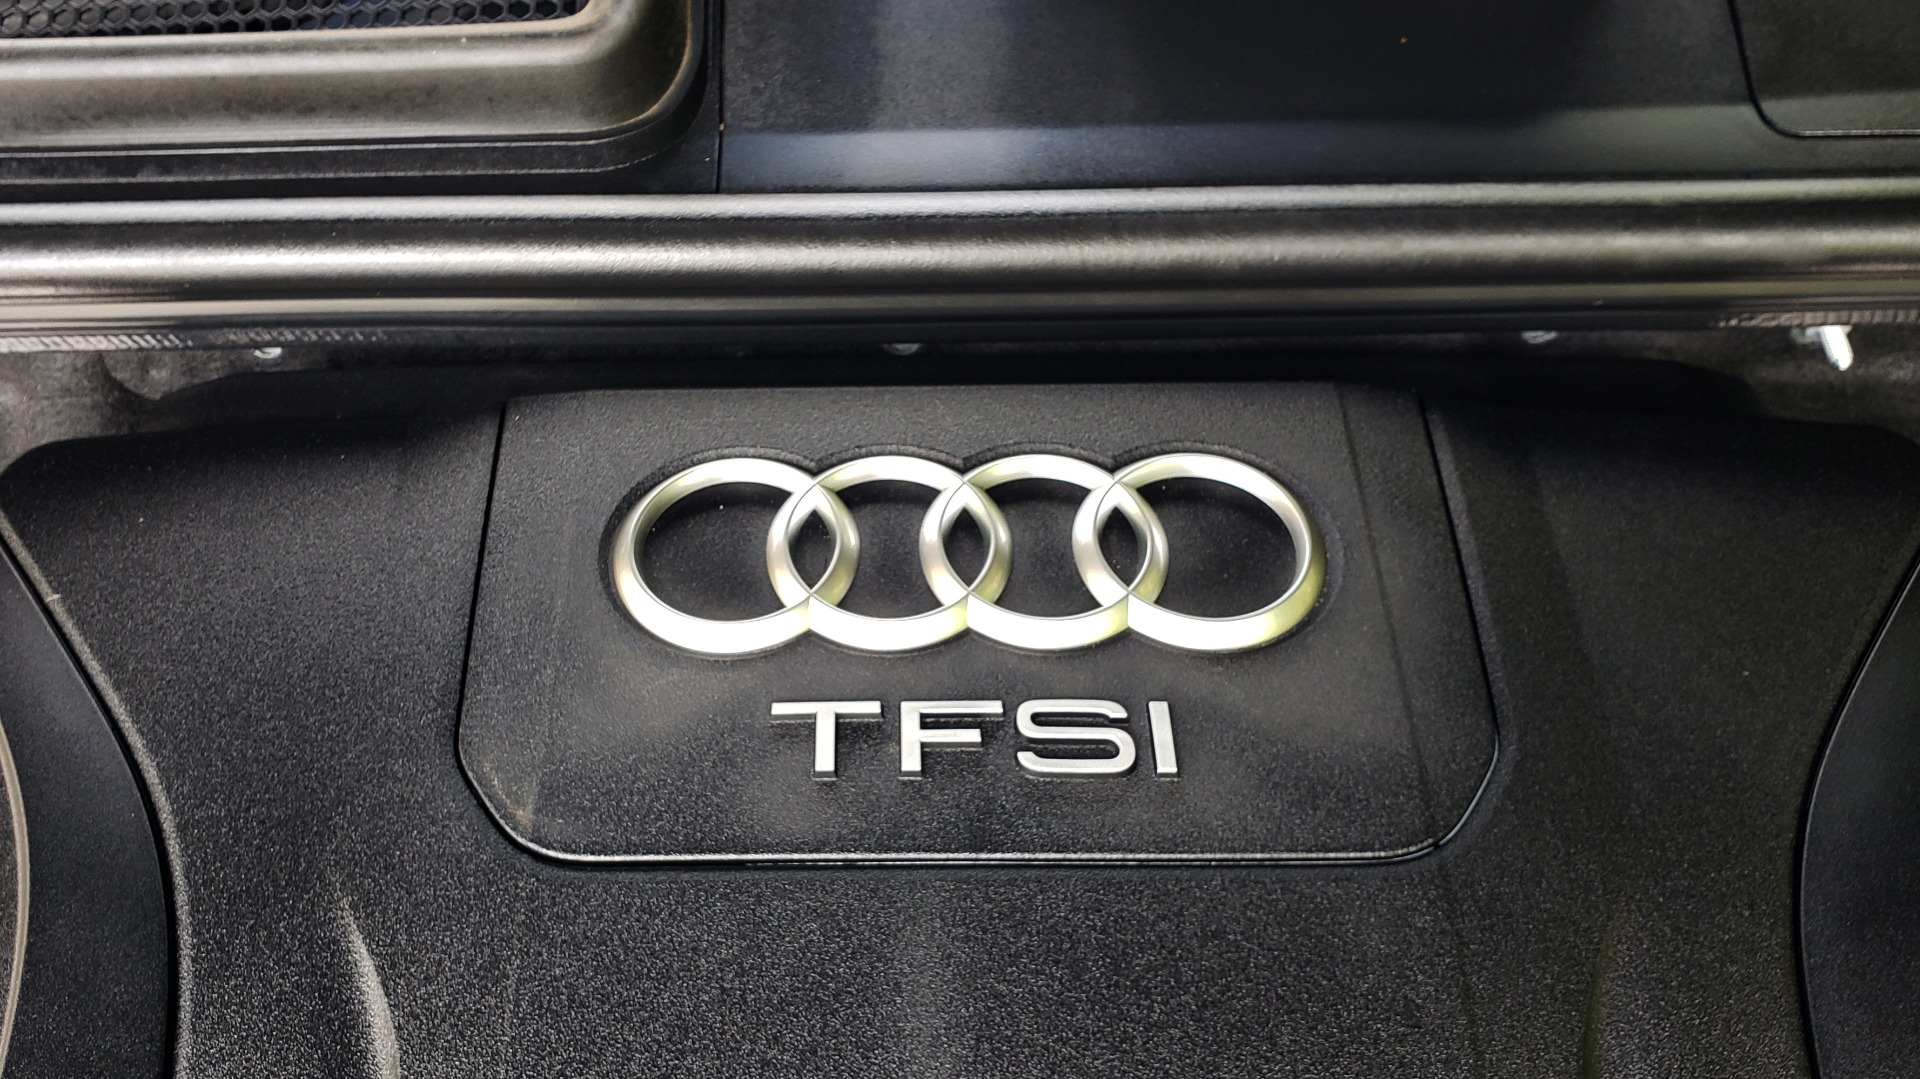 Used 2017 Audi Q7 PREMIUM PLUS / VISION PKG / NAV / PANO-ROOF / 3-ROW / REARVIEW for sale Sold at Formula Imports in Charlotte NC 28227 11